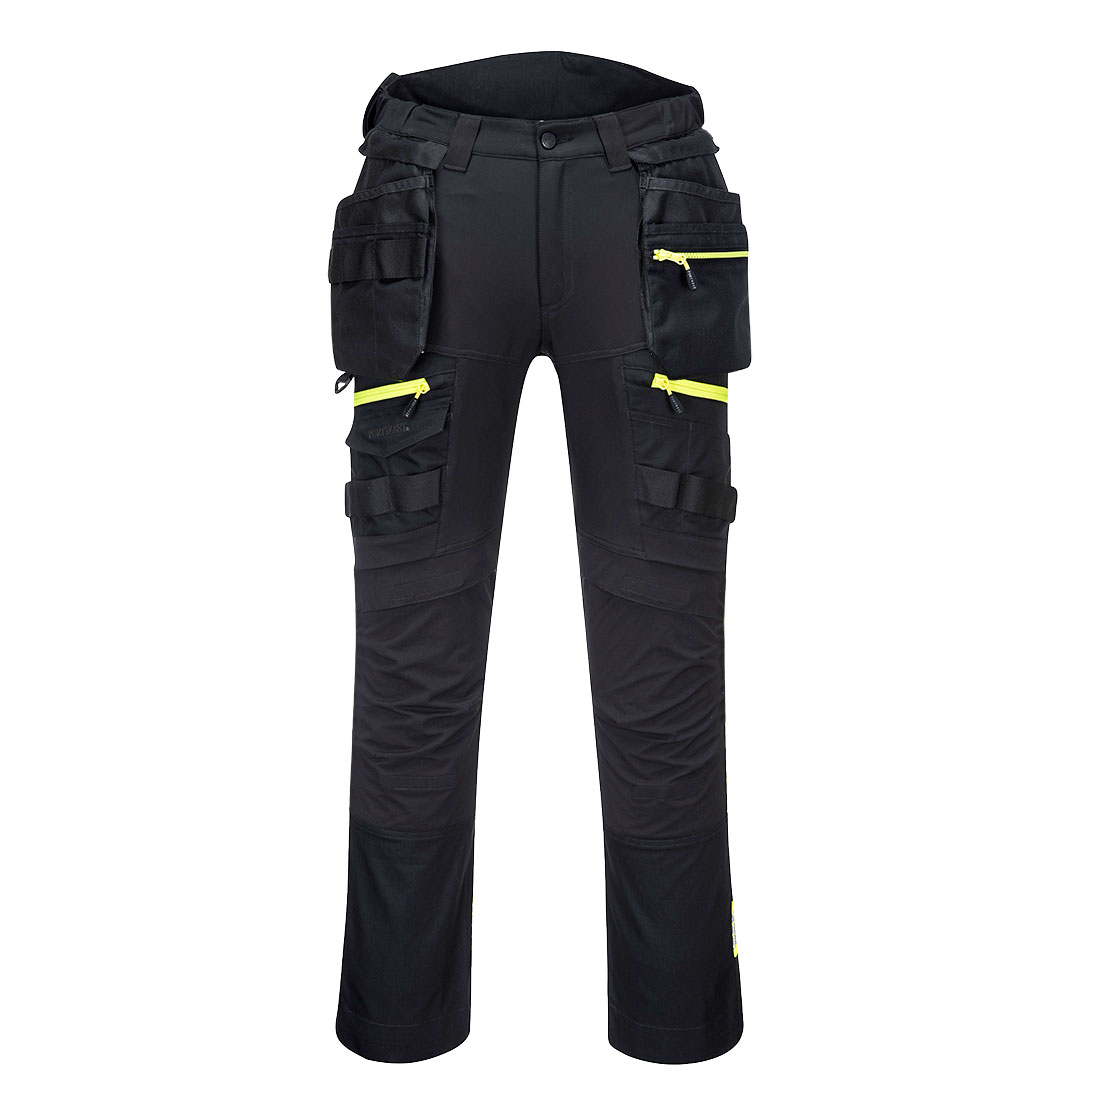 DX4 Holster Trousers